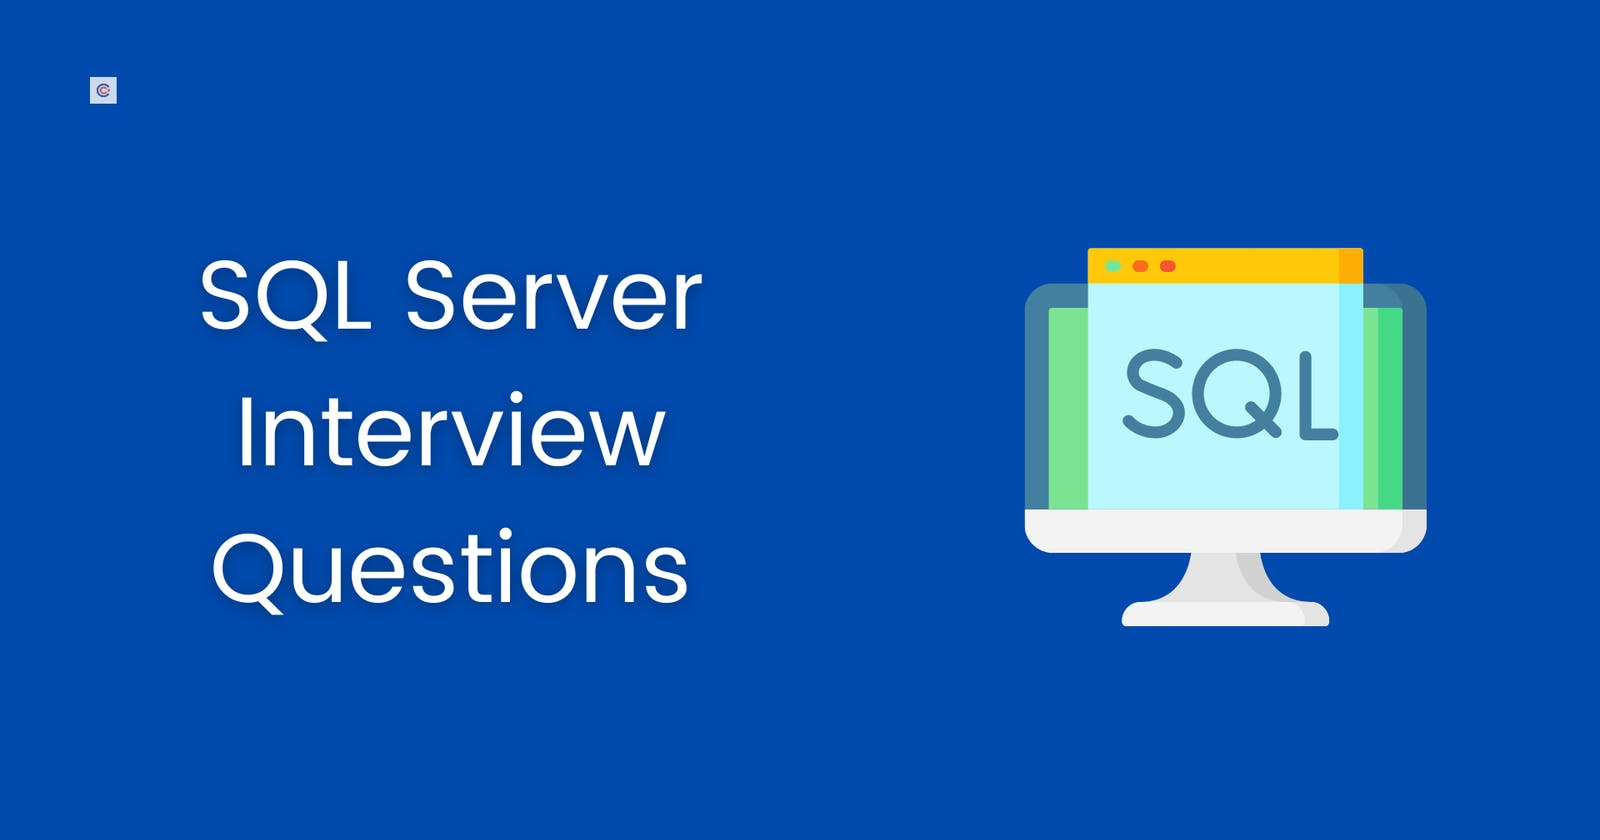 50 Most Common SQL Server Interview Questions For Beginners